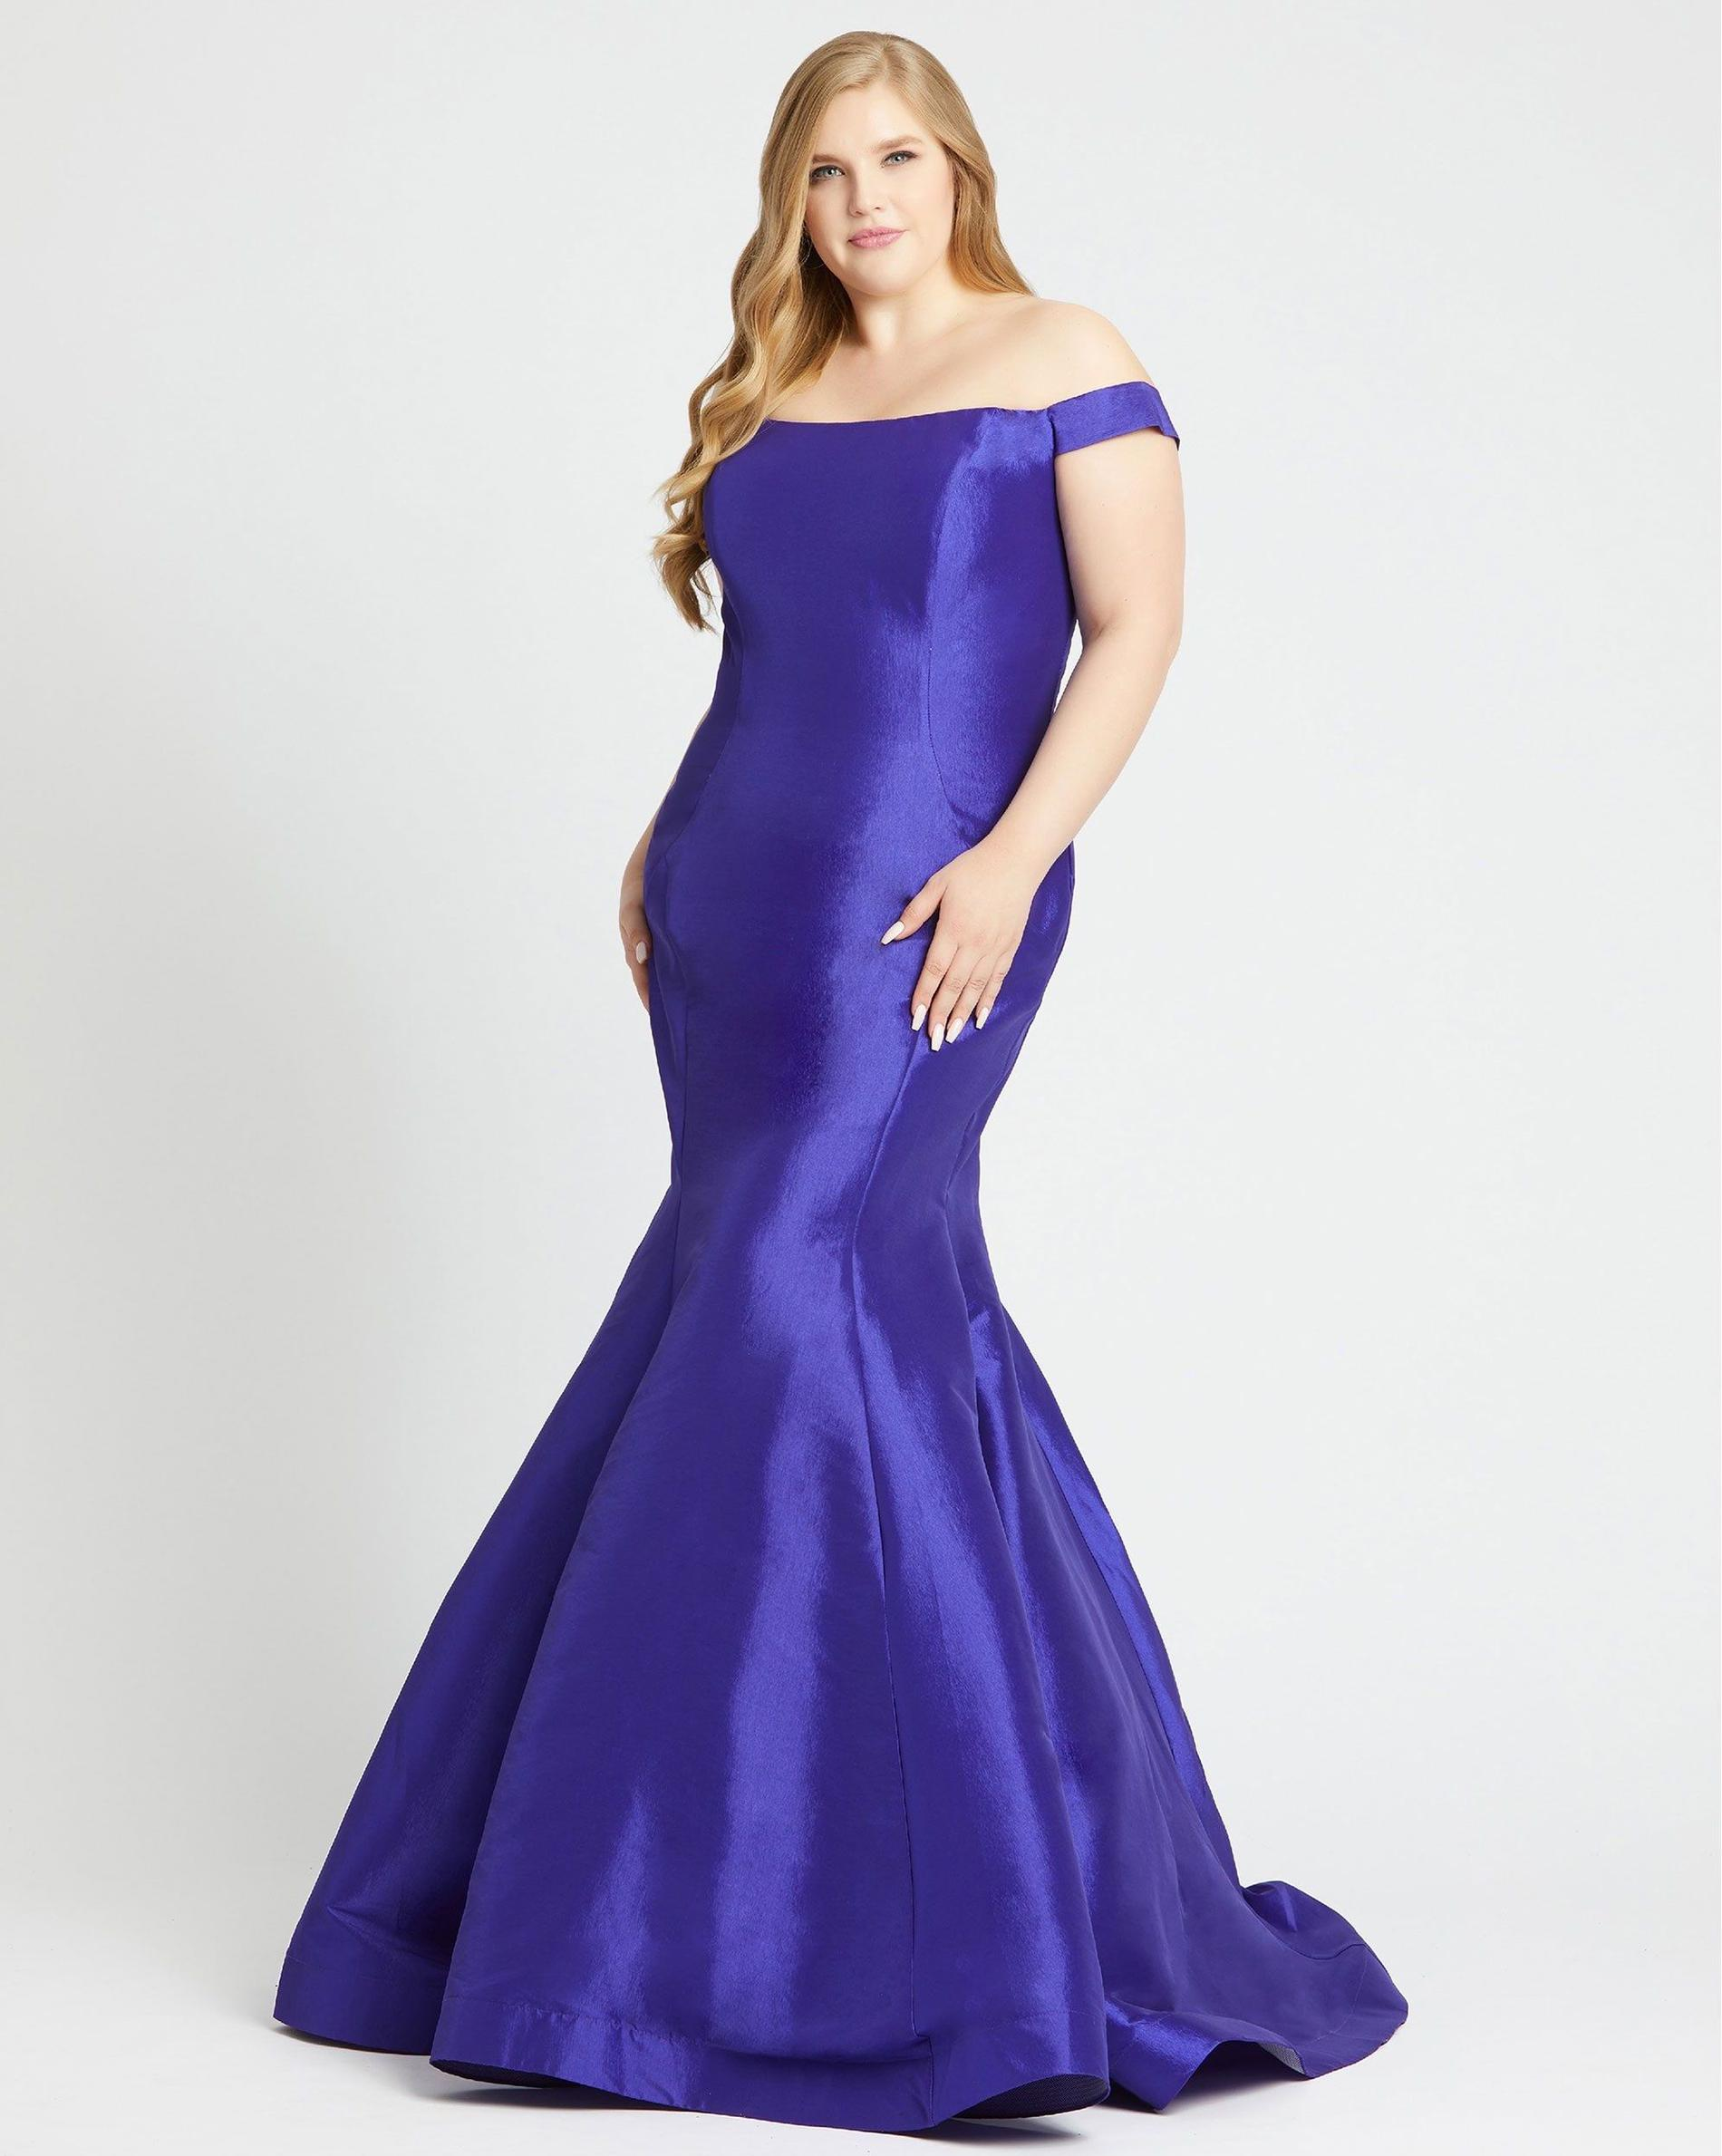 Style 66803 Mac Duggal Purple Size 26 Tall Height Wedding Guest Mermaid Dress on Queenly